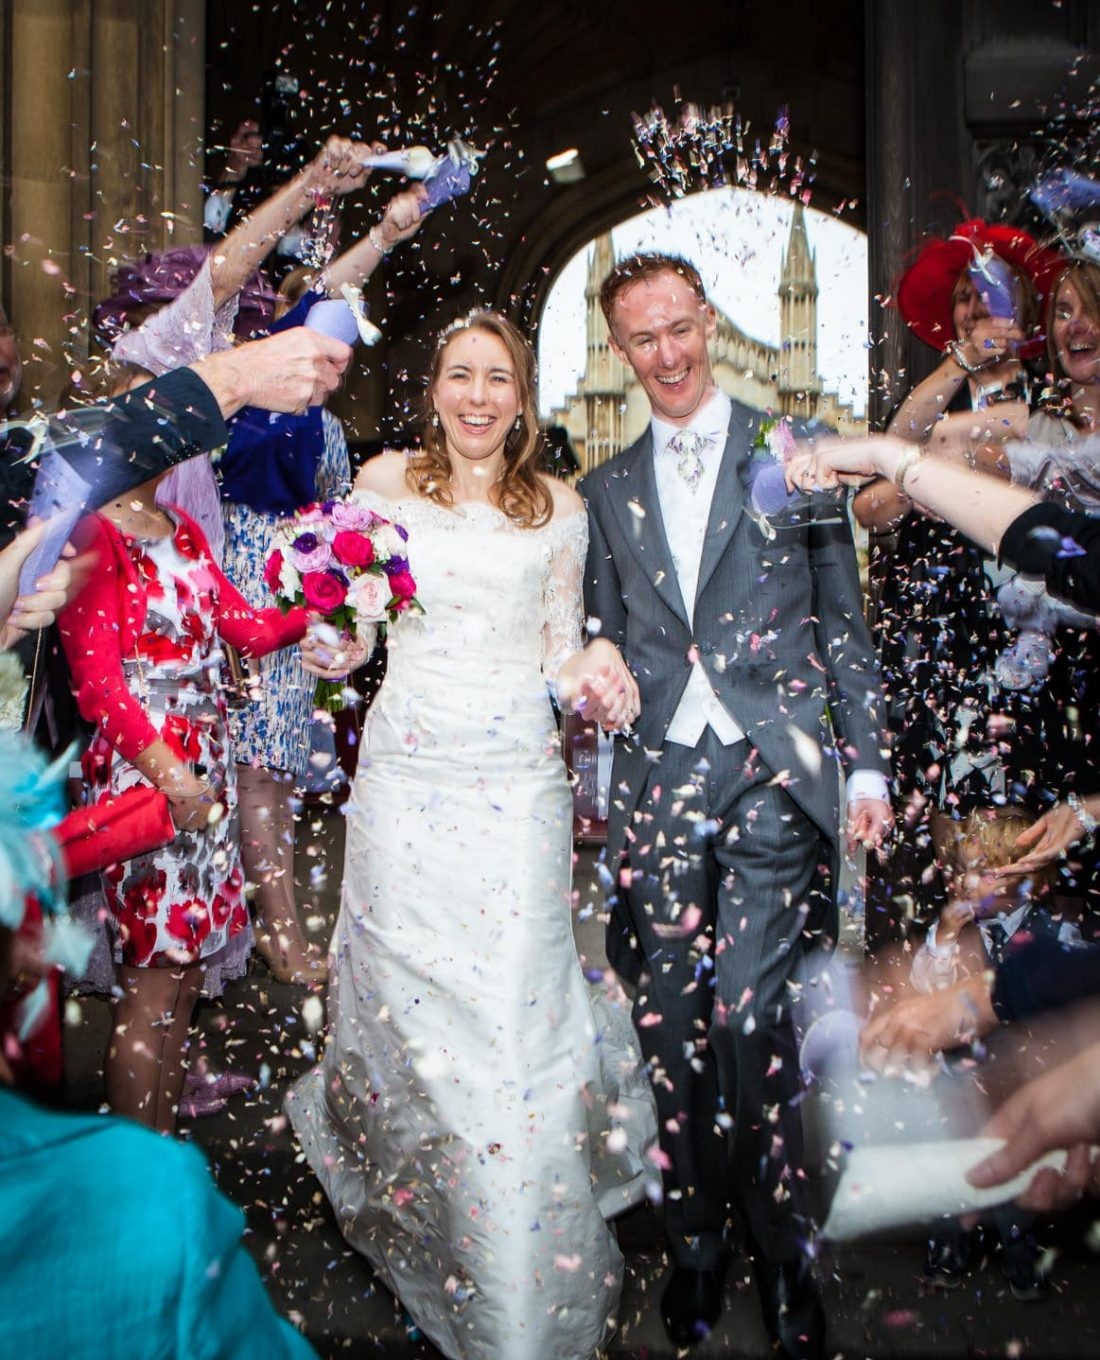 Bride and Groom walking through confetti at Corpus Christie College wedding. Natural Wedding Photography